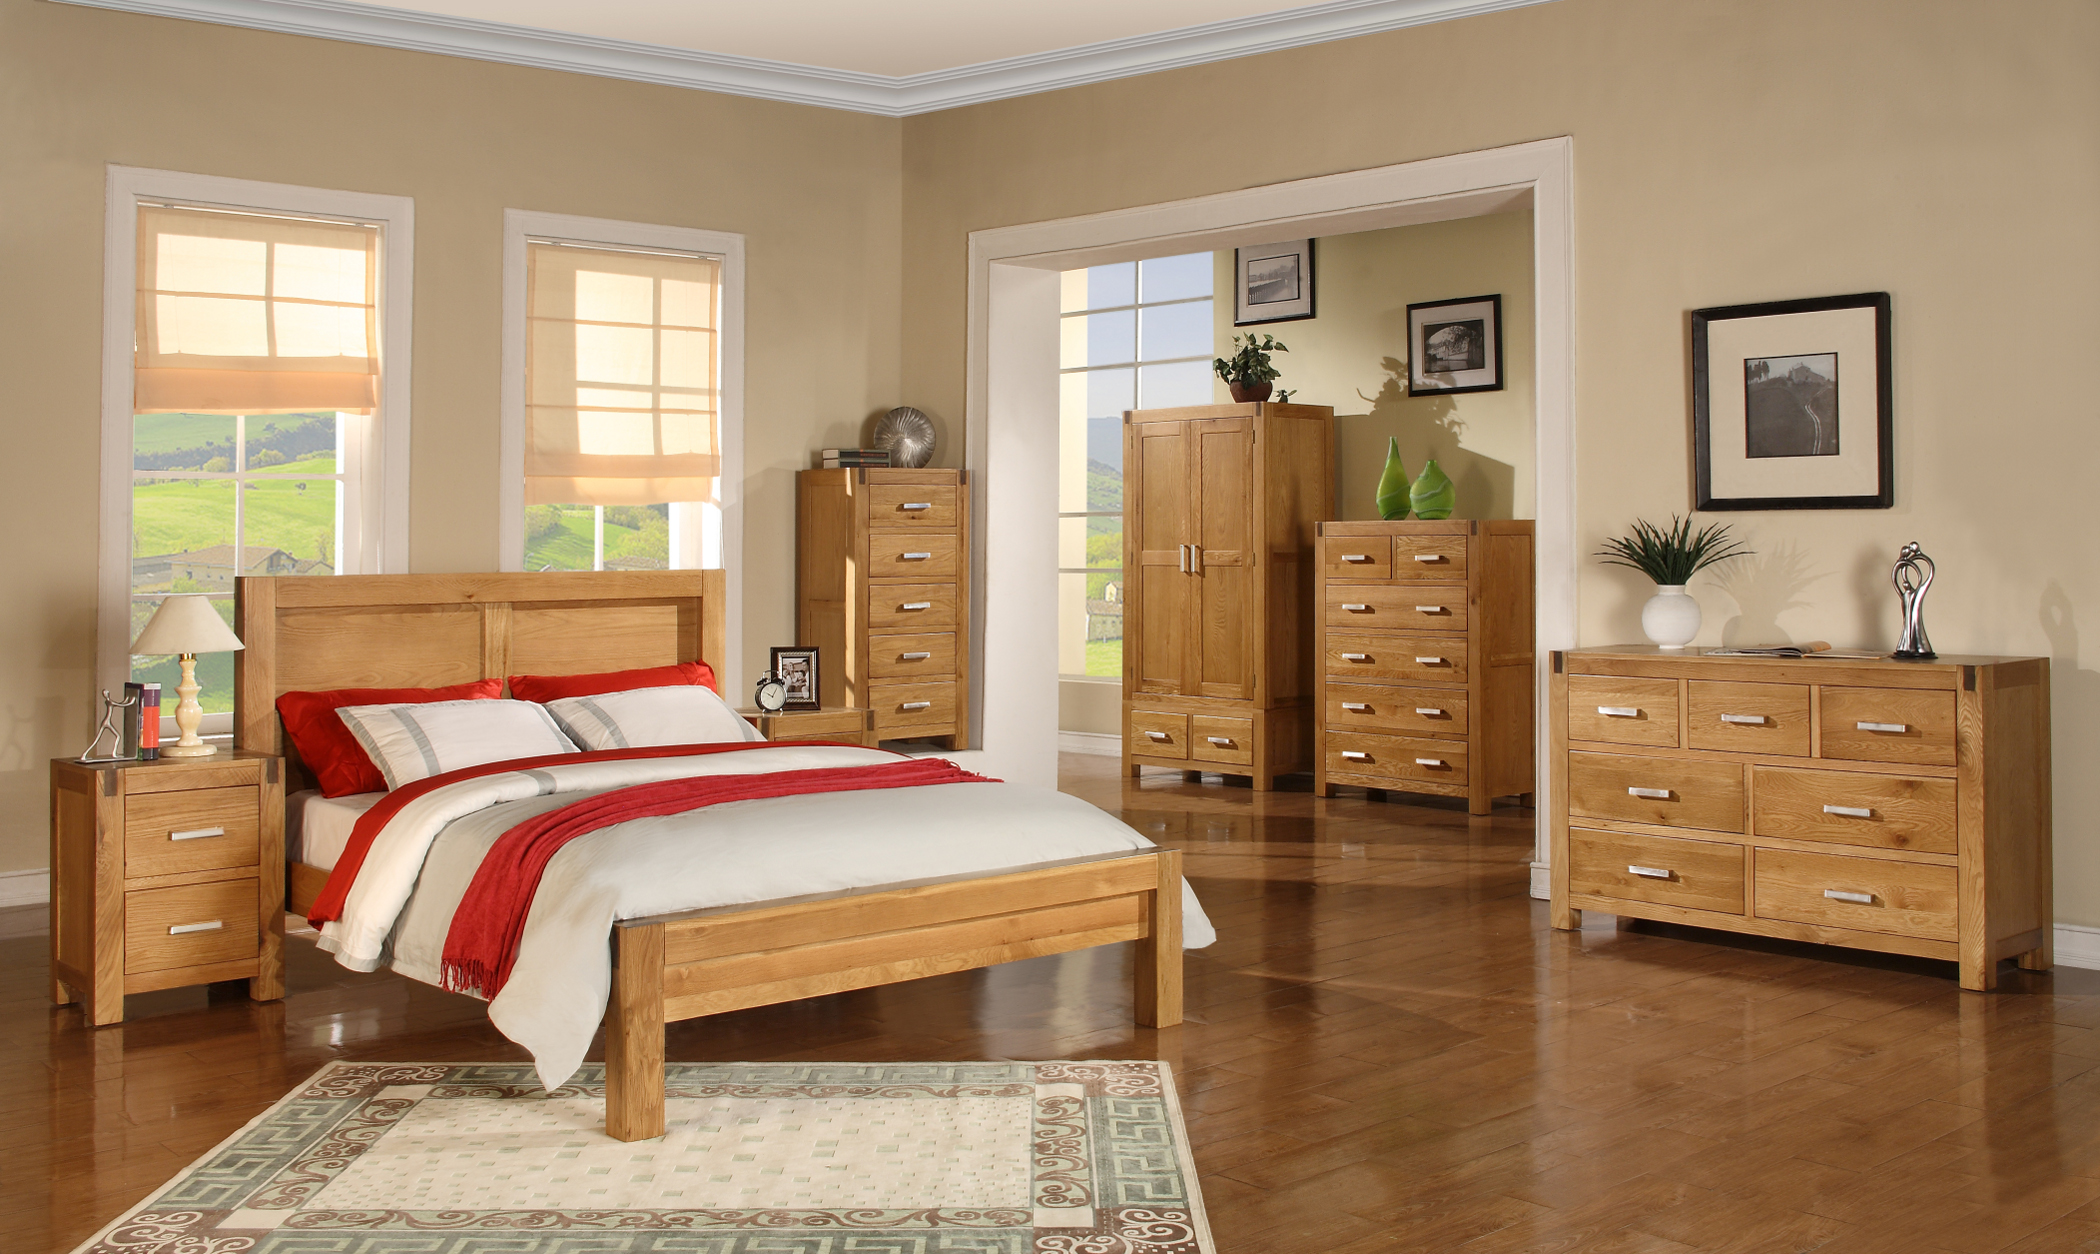 bedroom furniture sets oak photo - 1